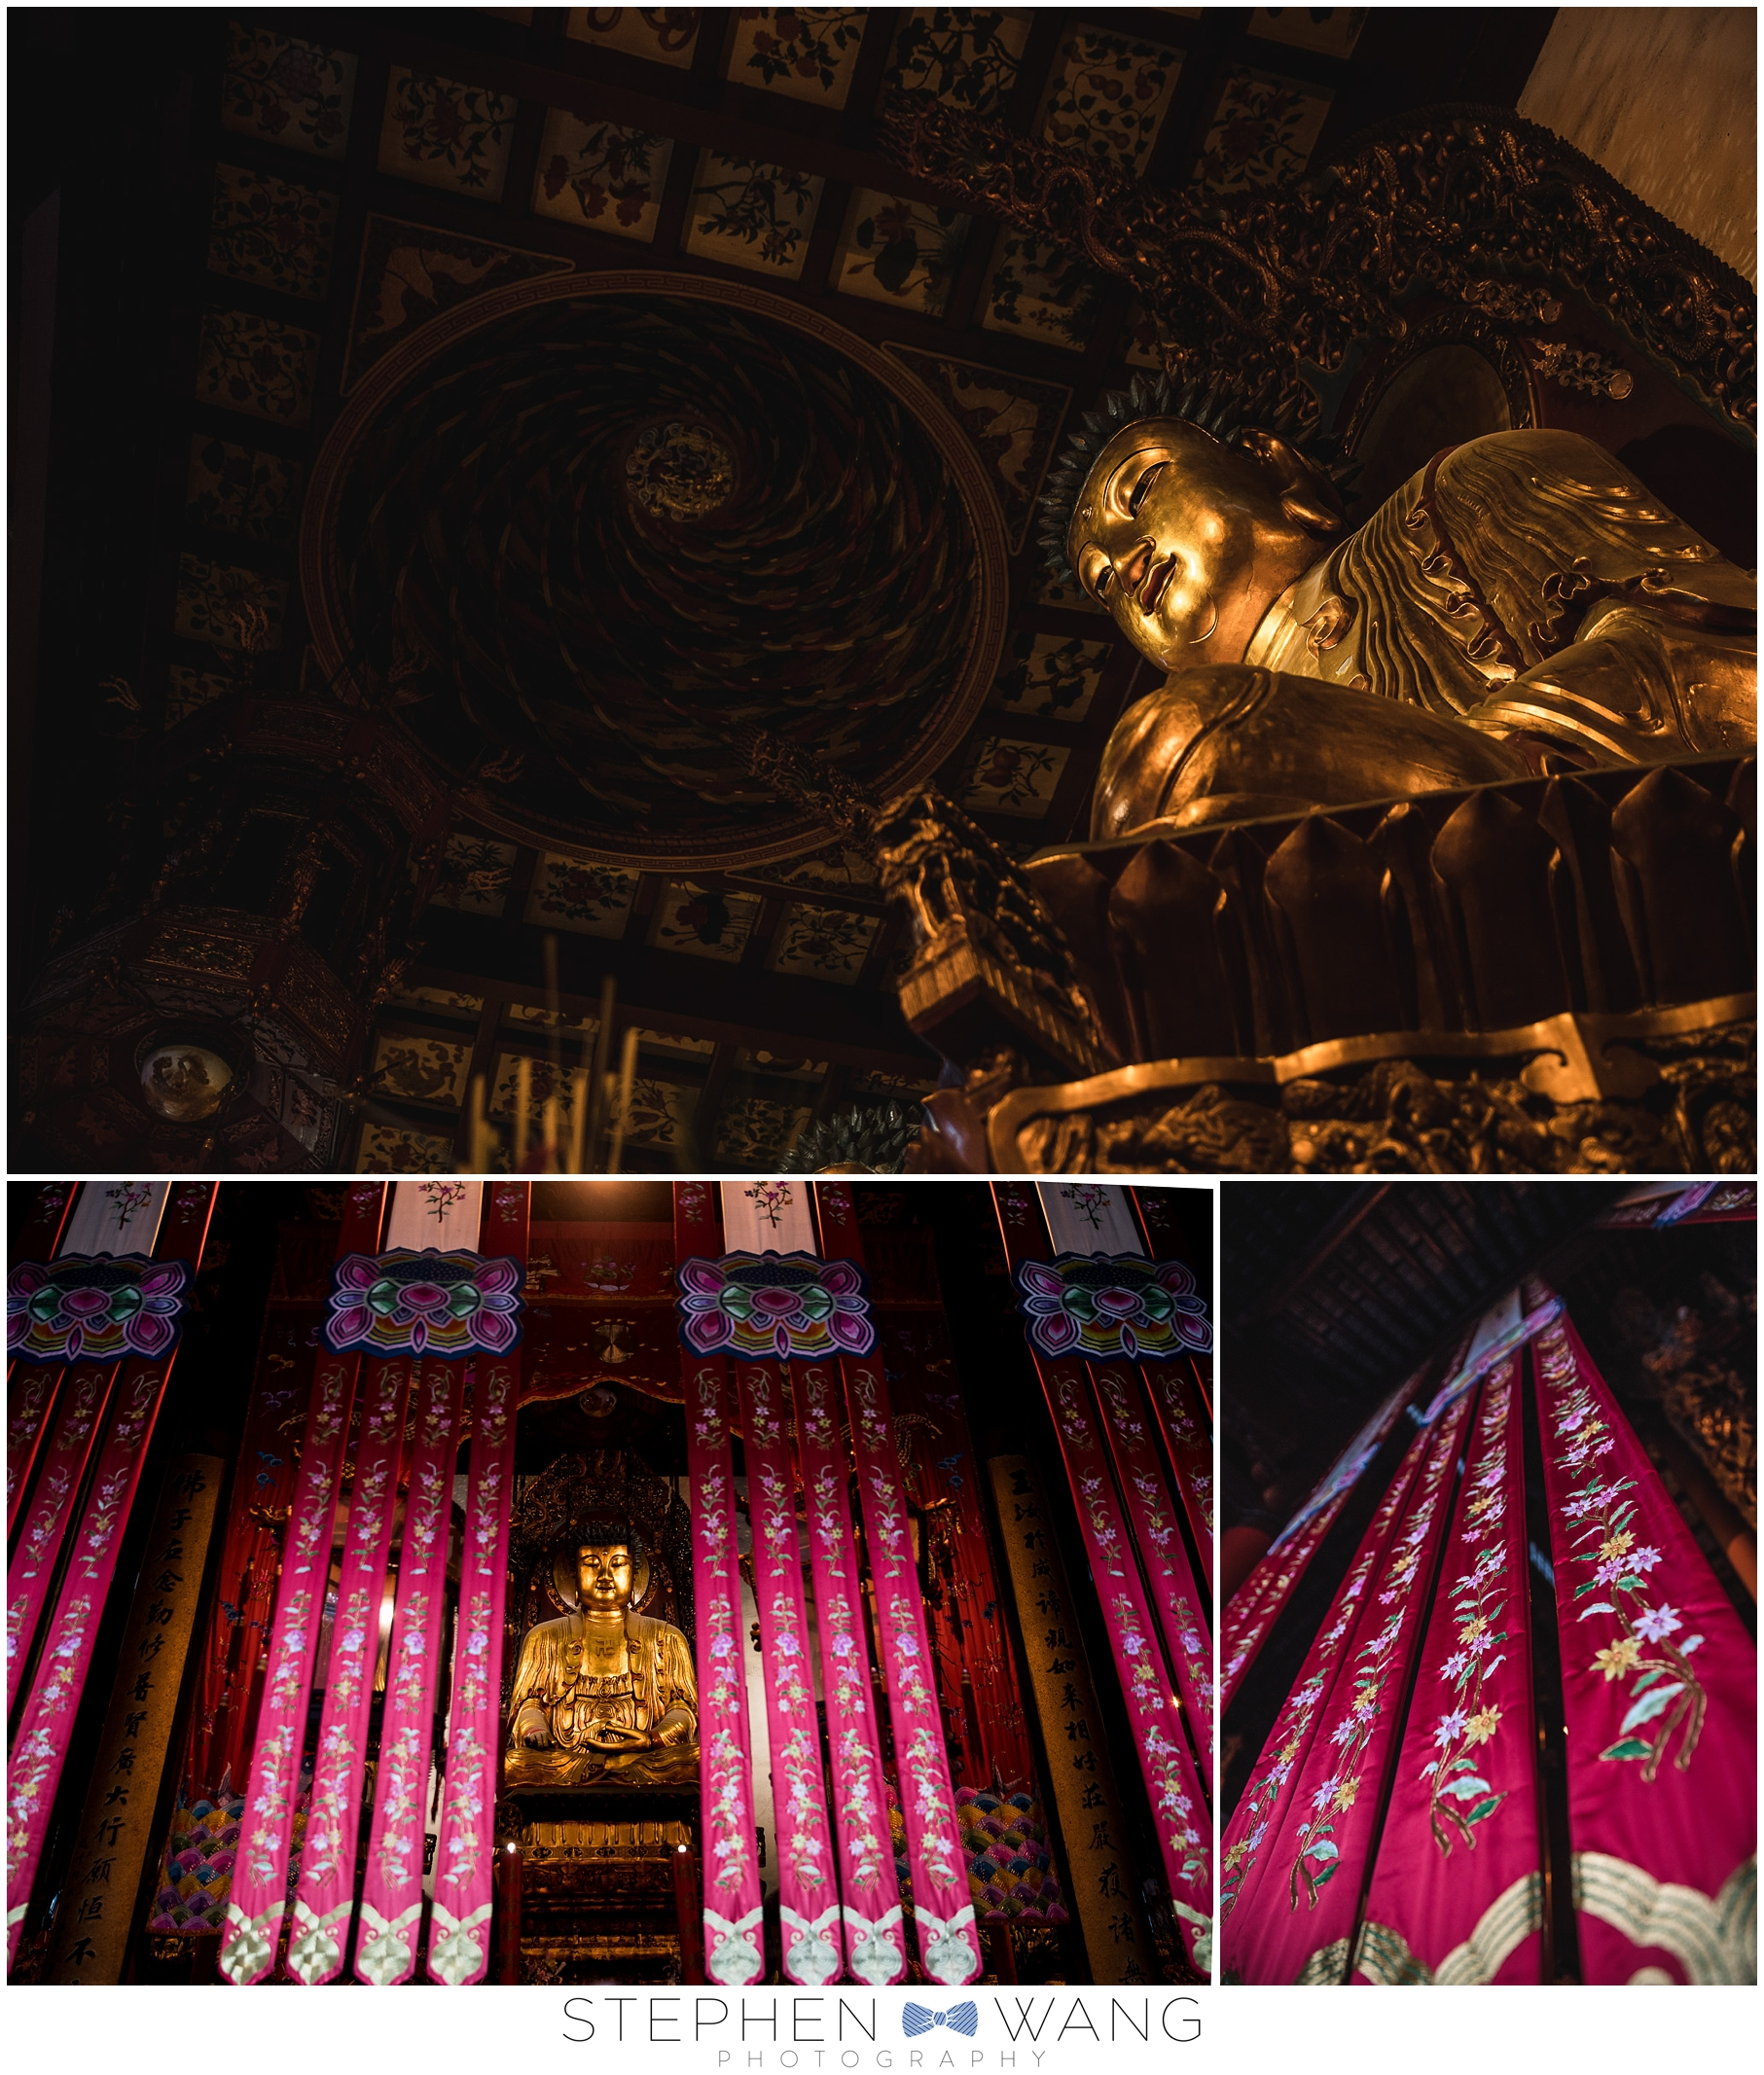 One of our first stops was the Jade Buddha Temple, one of the most active Buddhist temples in Shanghai, dating back to the Qing Dynasty.  Lots of Buddha statues and tapestries.